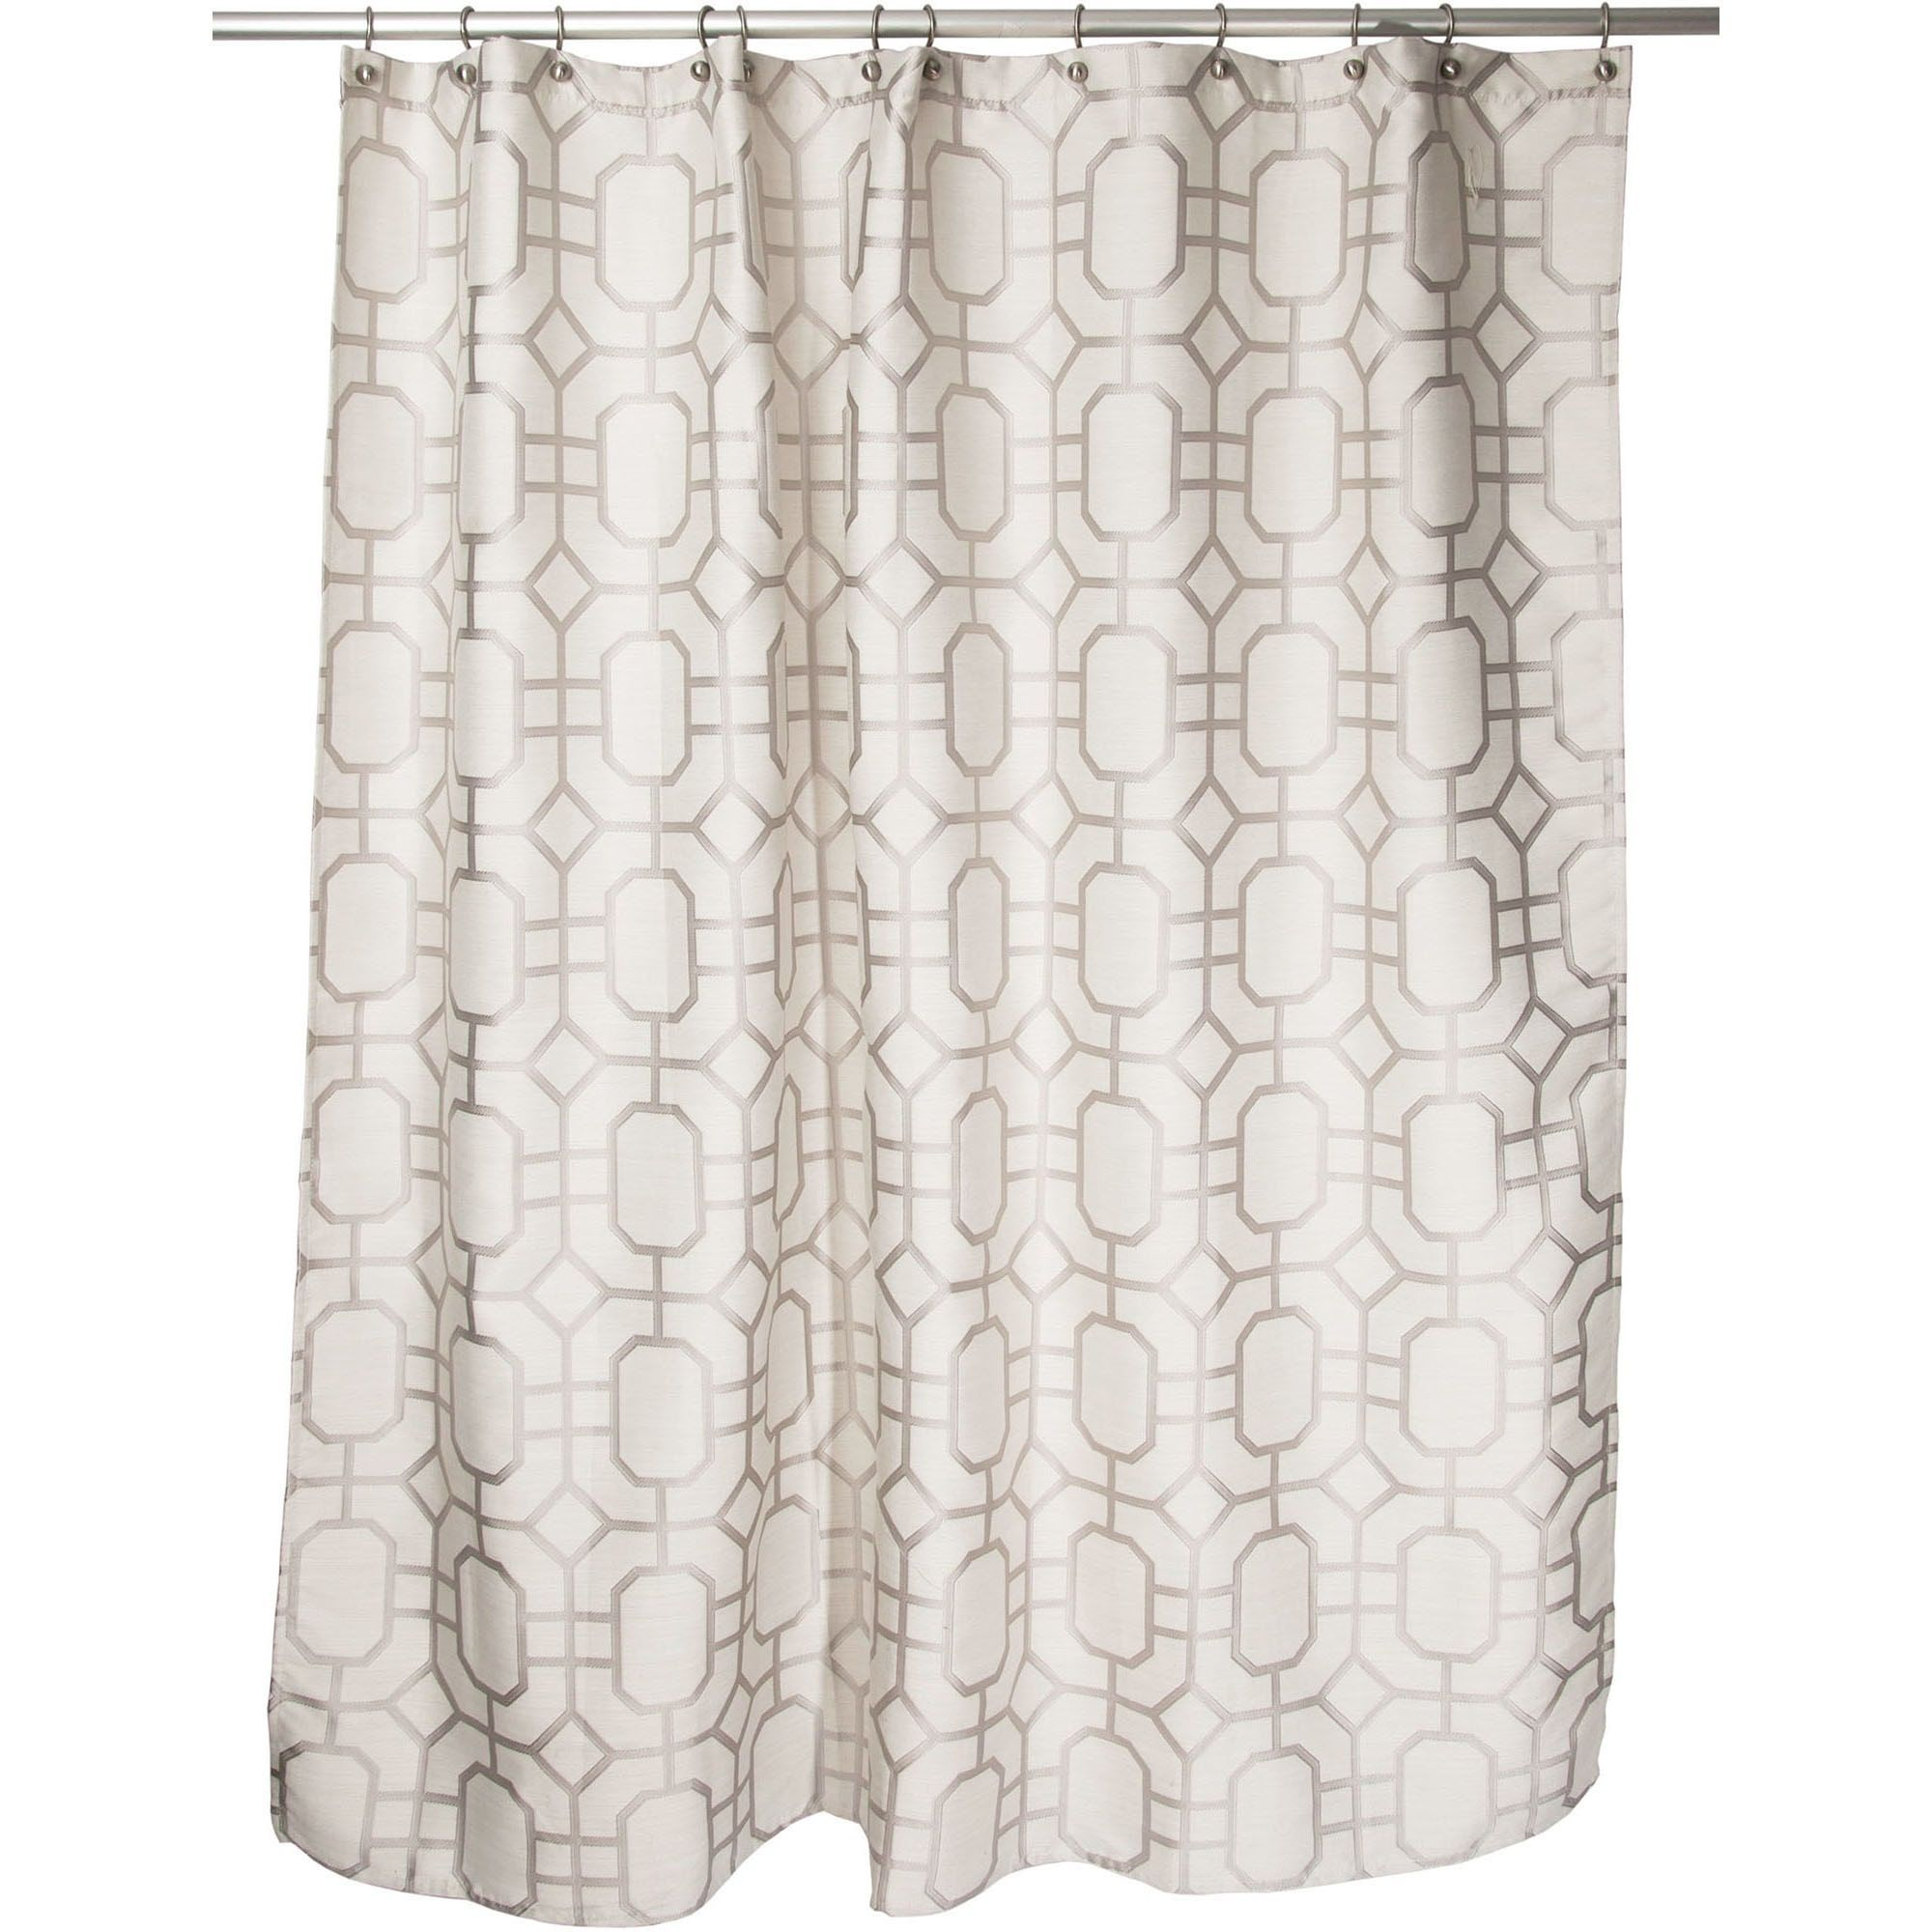 Famous Home Corinth Shower Curtain Dimensions 70 X 72 Color